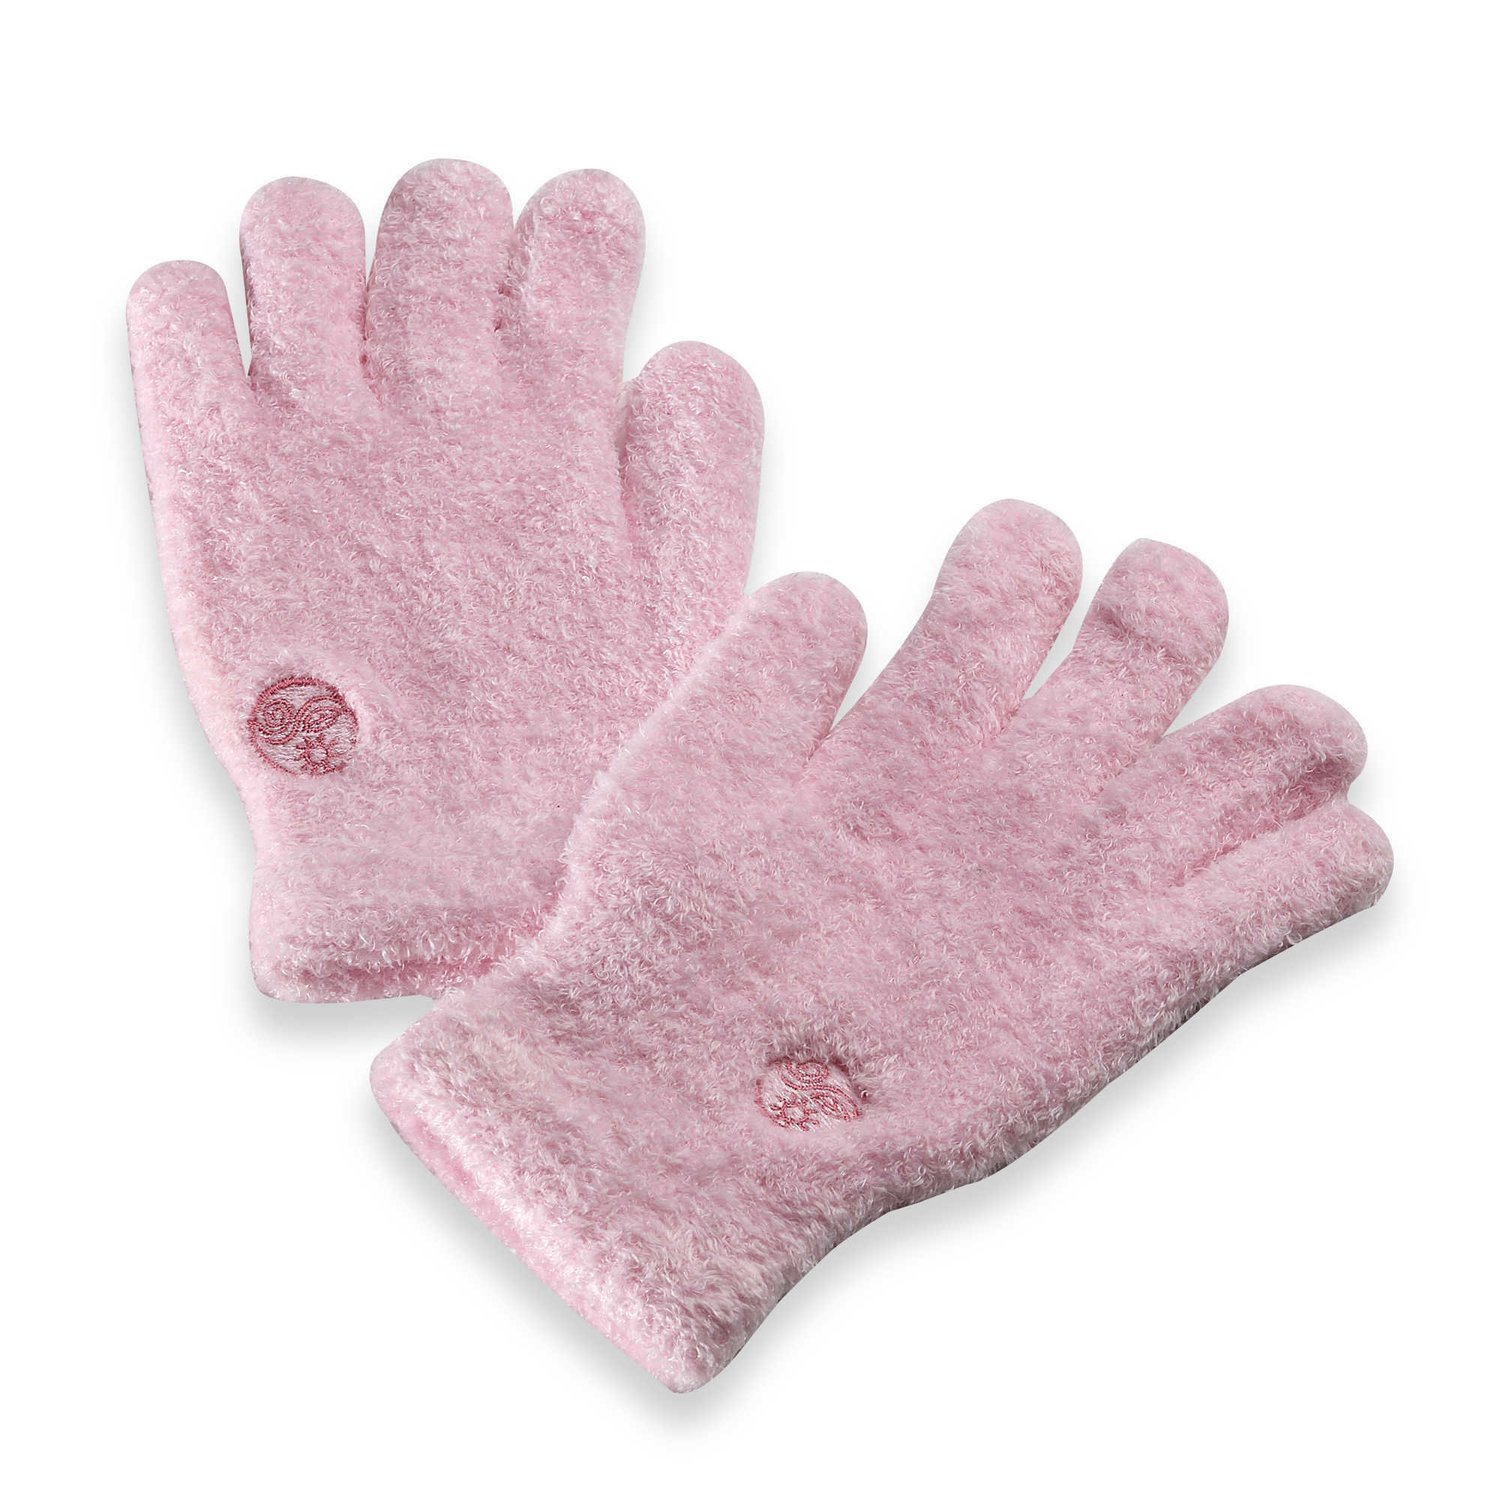 Aloe Infused Gloves | Diabetic Neuropathy | Soft Warm Gloves | Ultra Plush | Arthritis | Hand Pain Relief | Aching Hands